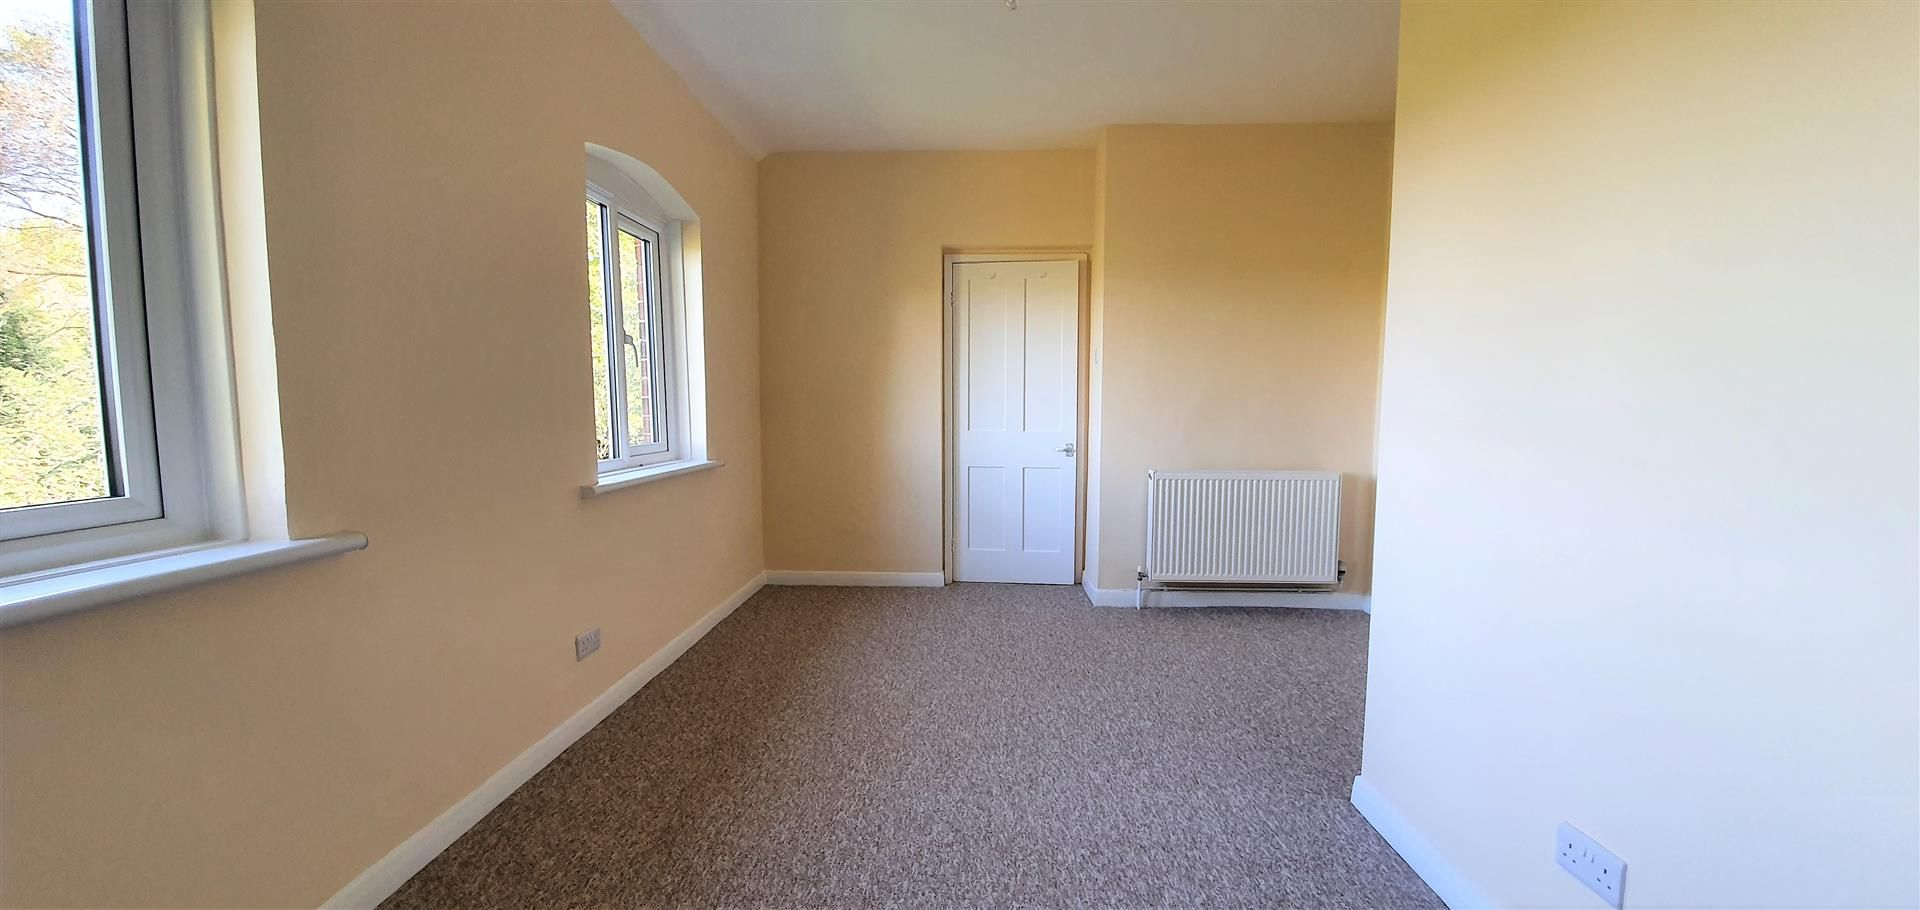 4 bed house to rent in Breinton 9